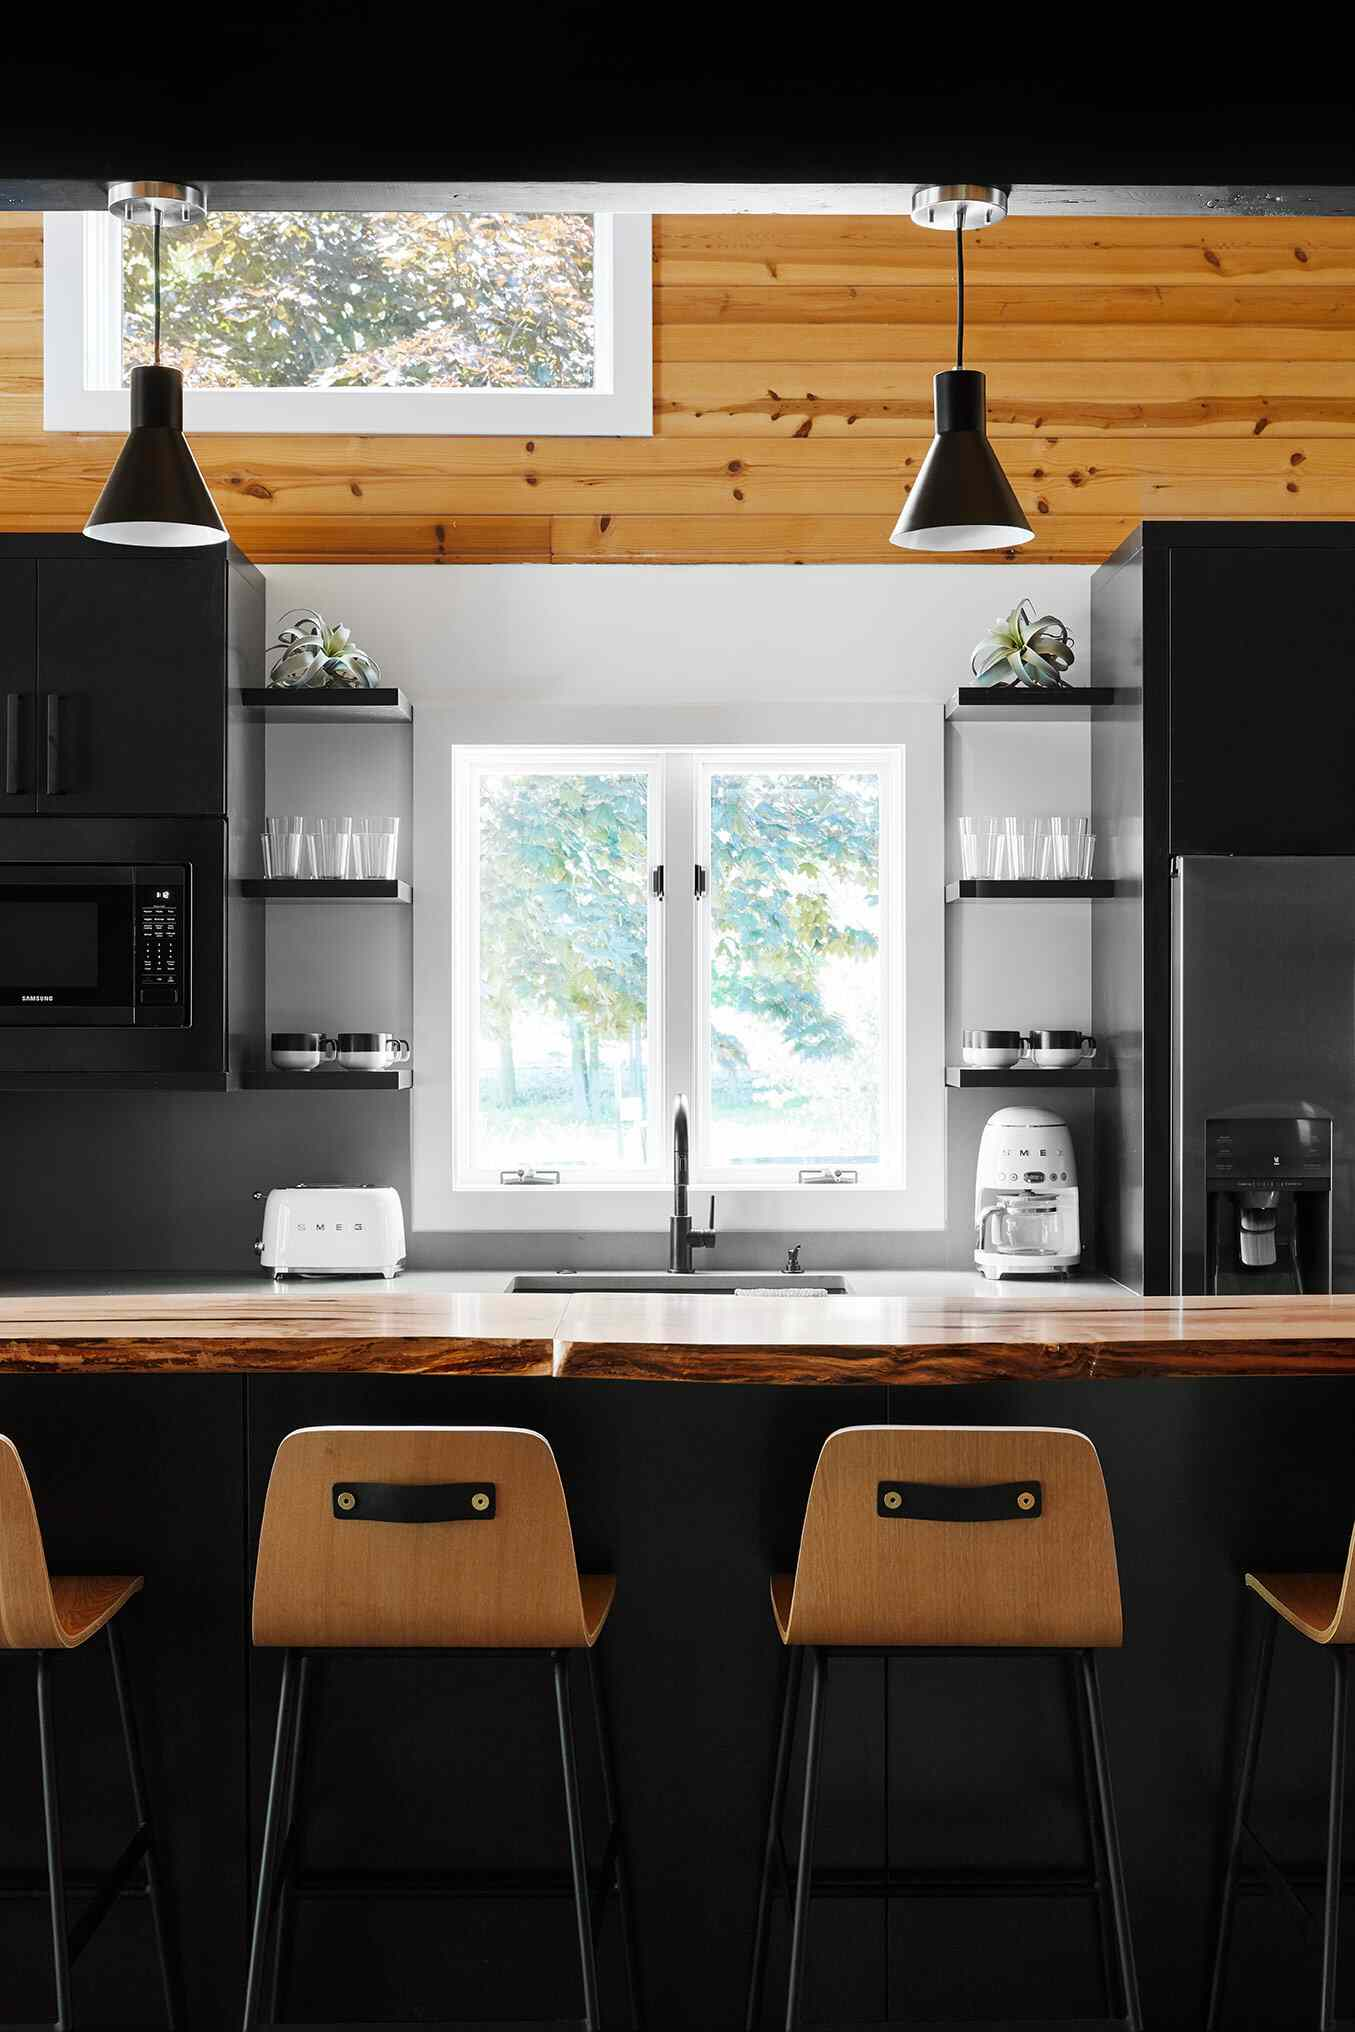 A modern rustic kitchen filled with wood and black metal accents